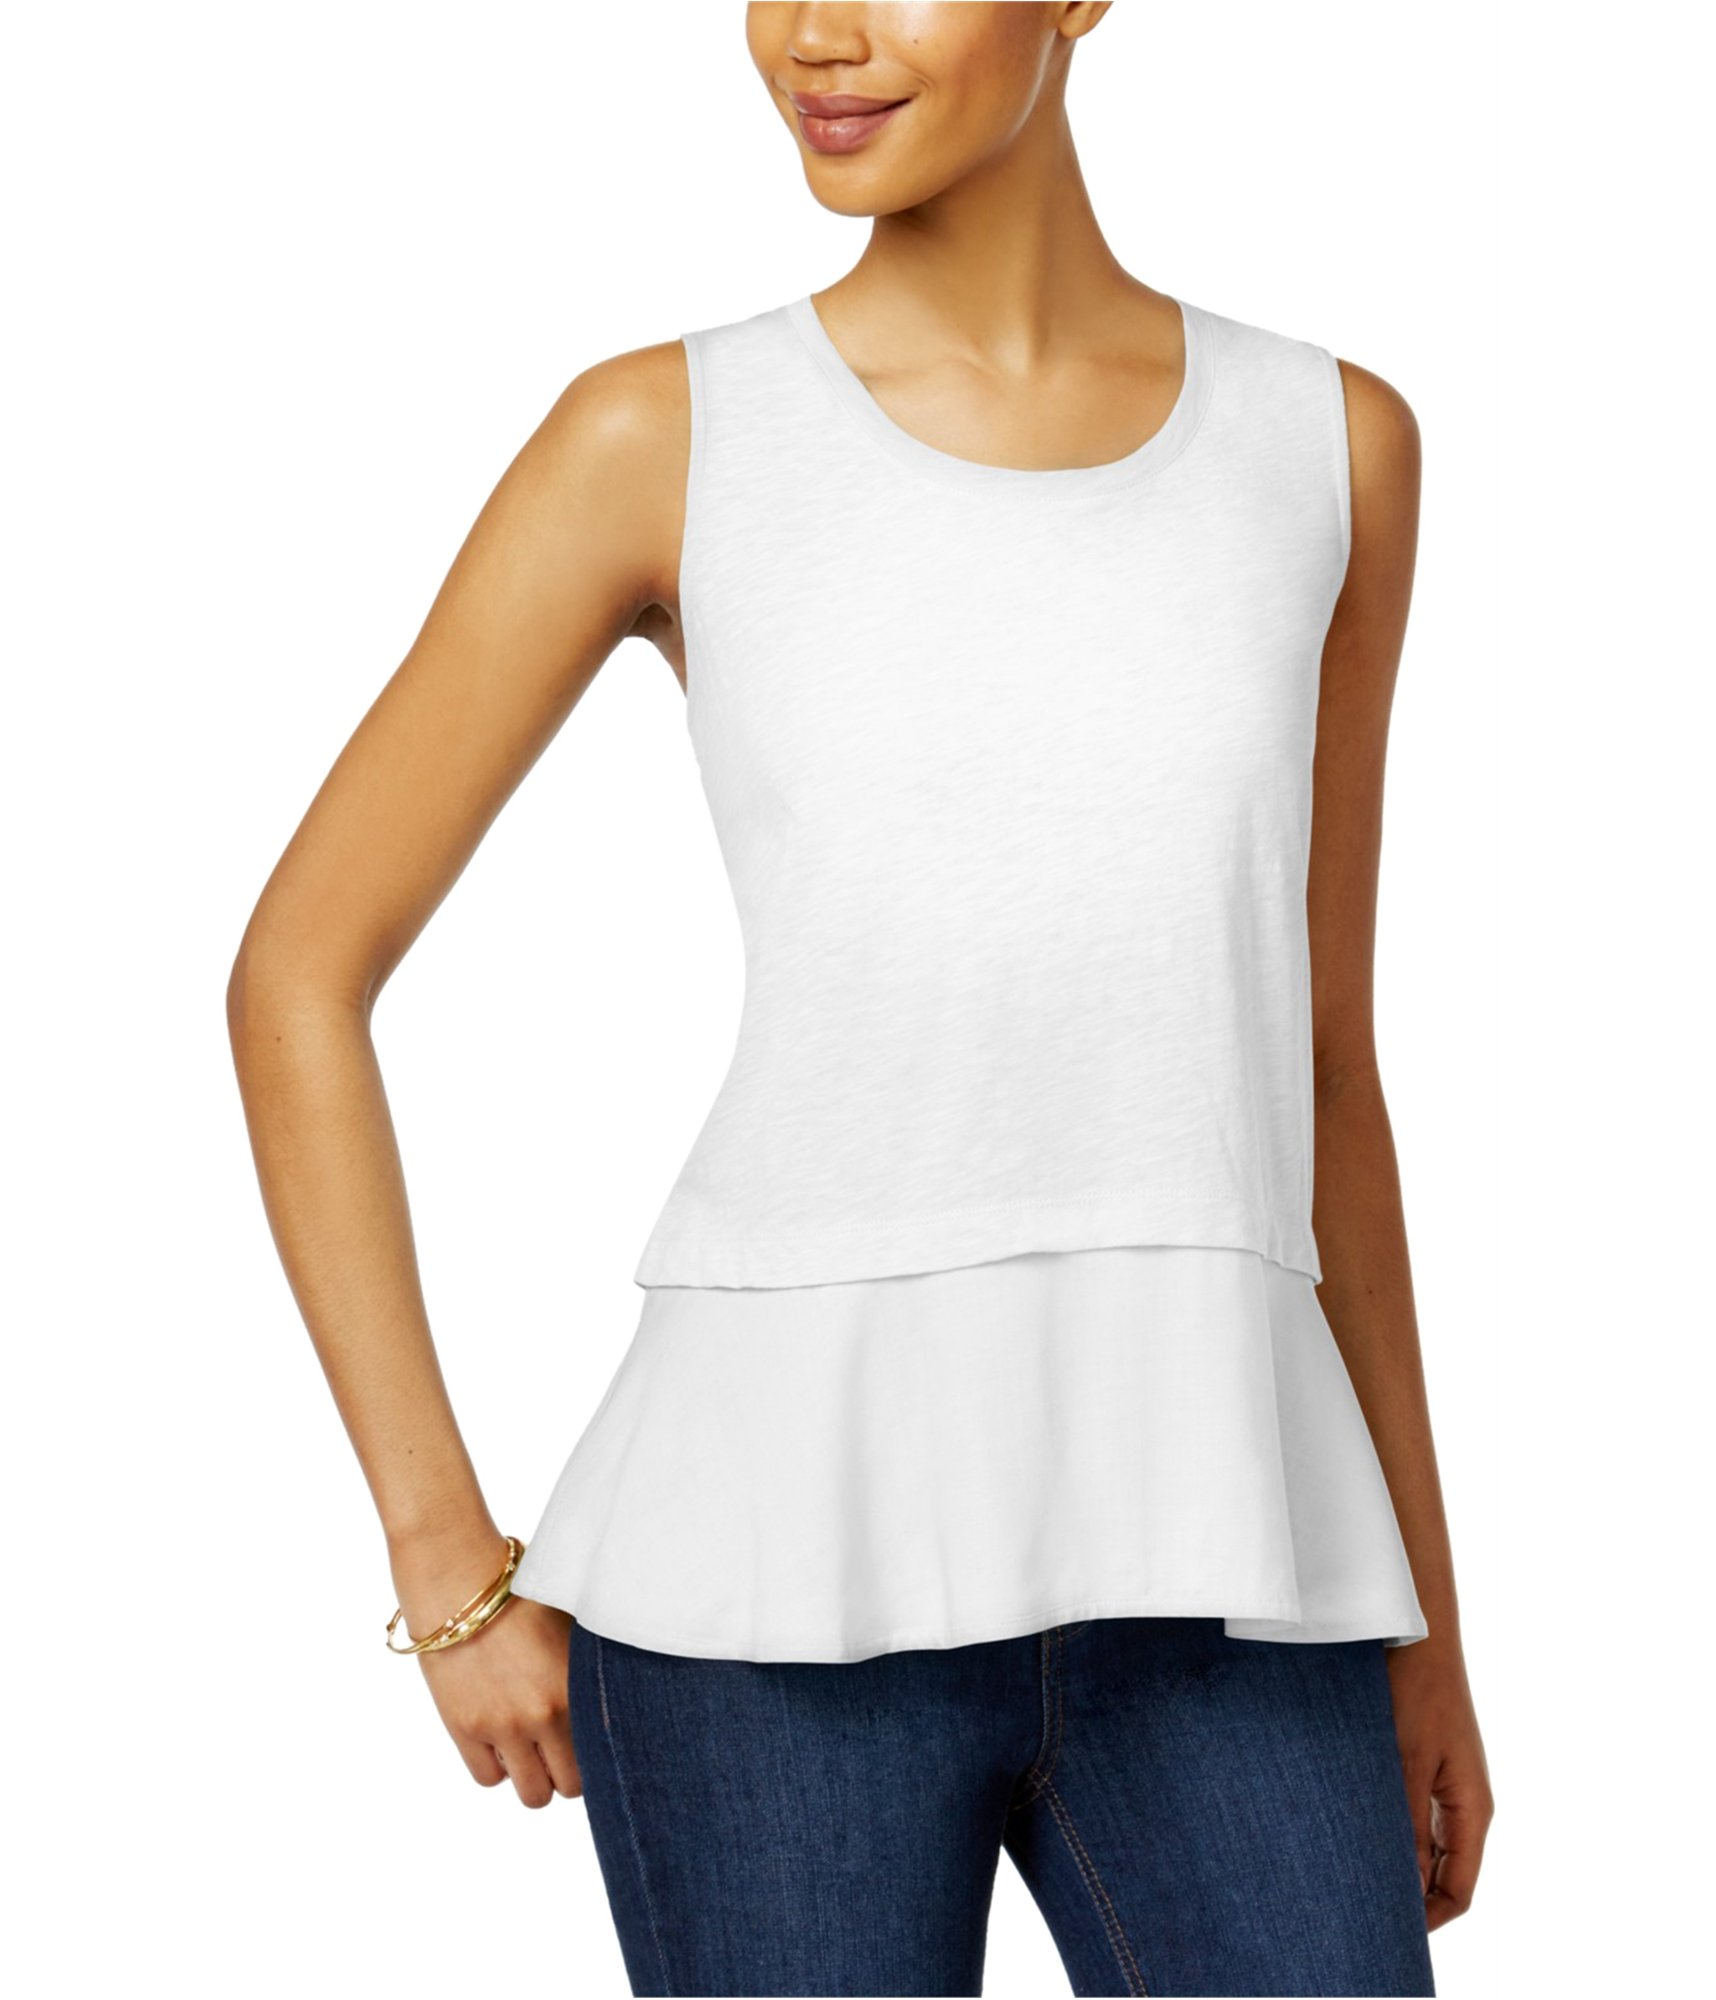 Style & Co. Womens Layered Look Scoop Neck Peplum Top White XL